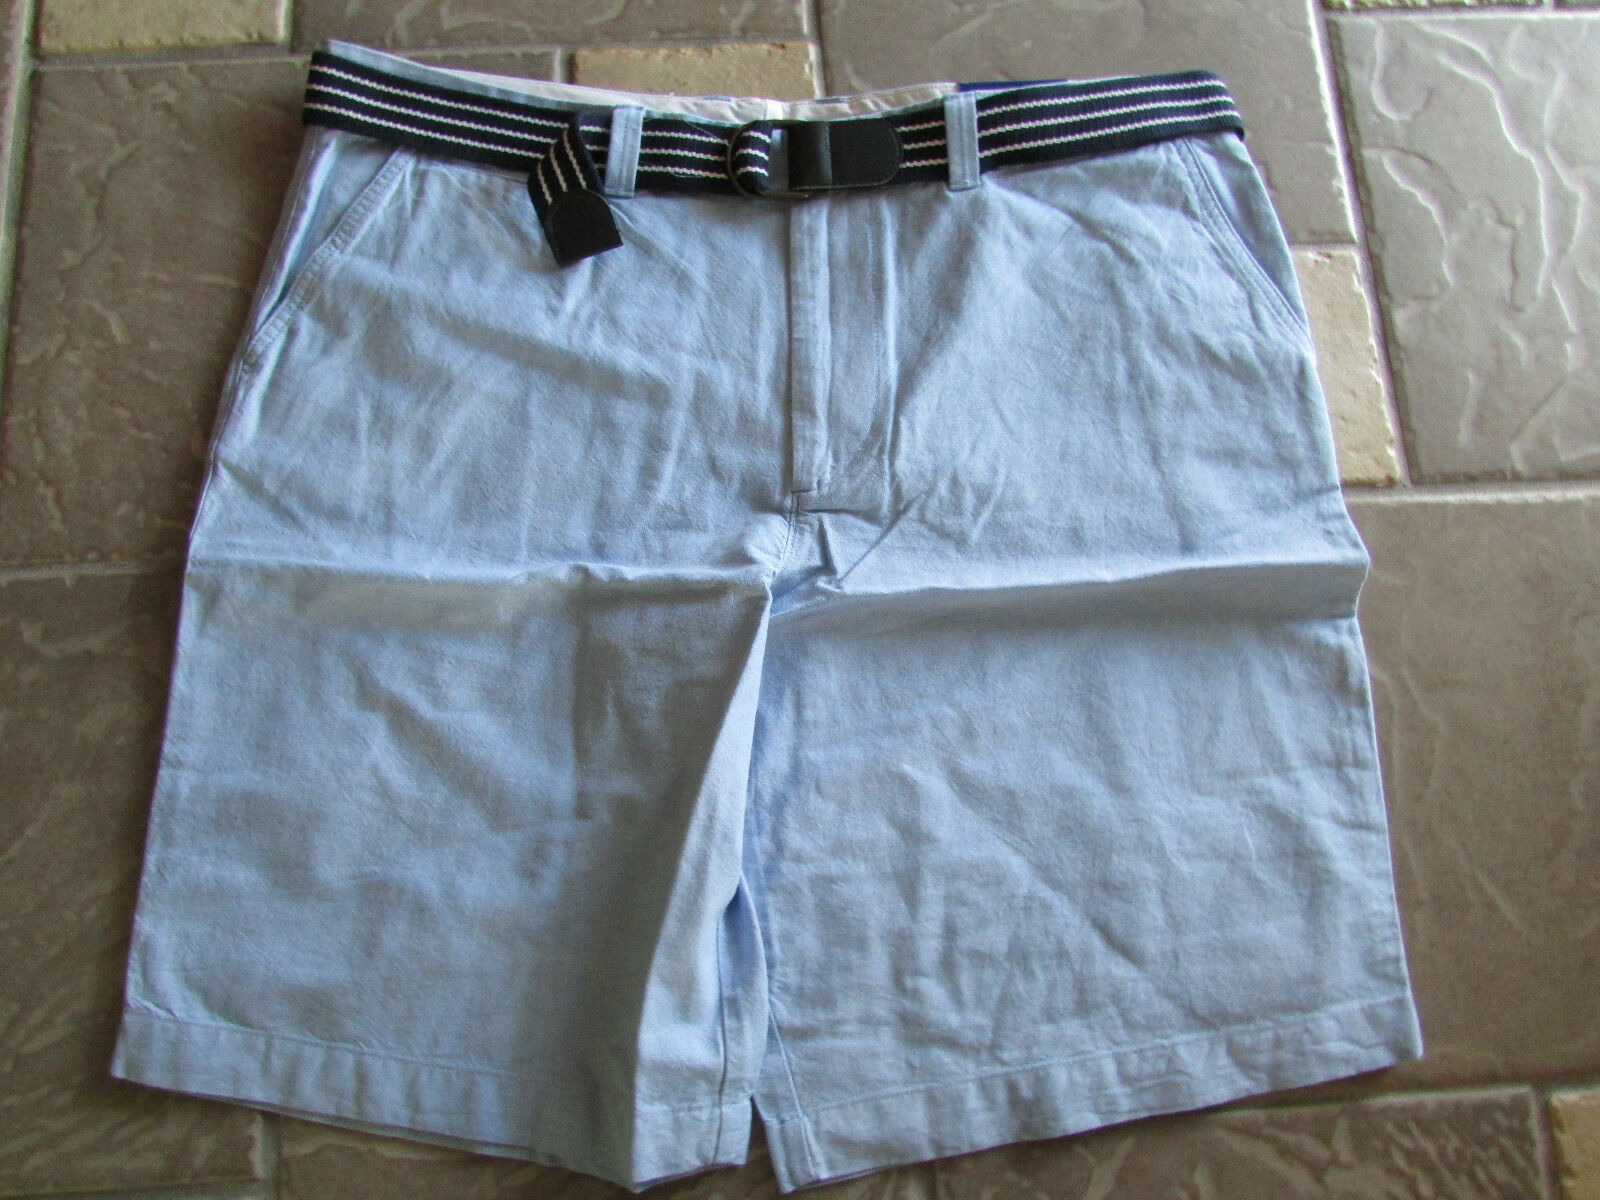 NEW LETIGRE LIGHT blueE BELTED SHORTS MENS 40 FLAT FRONT COTTON FREE SHIP